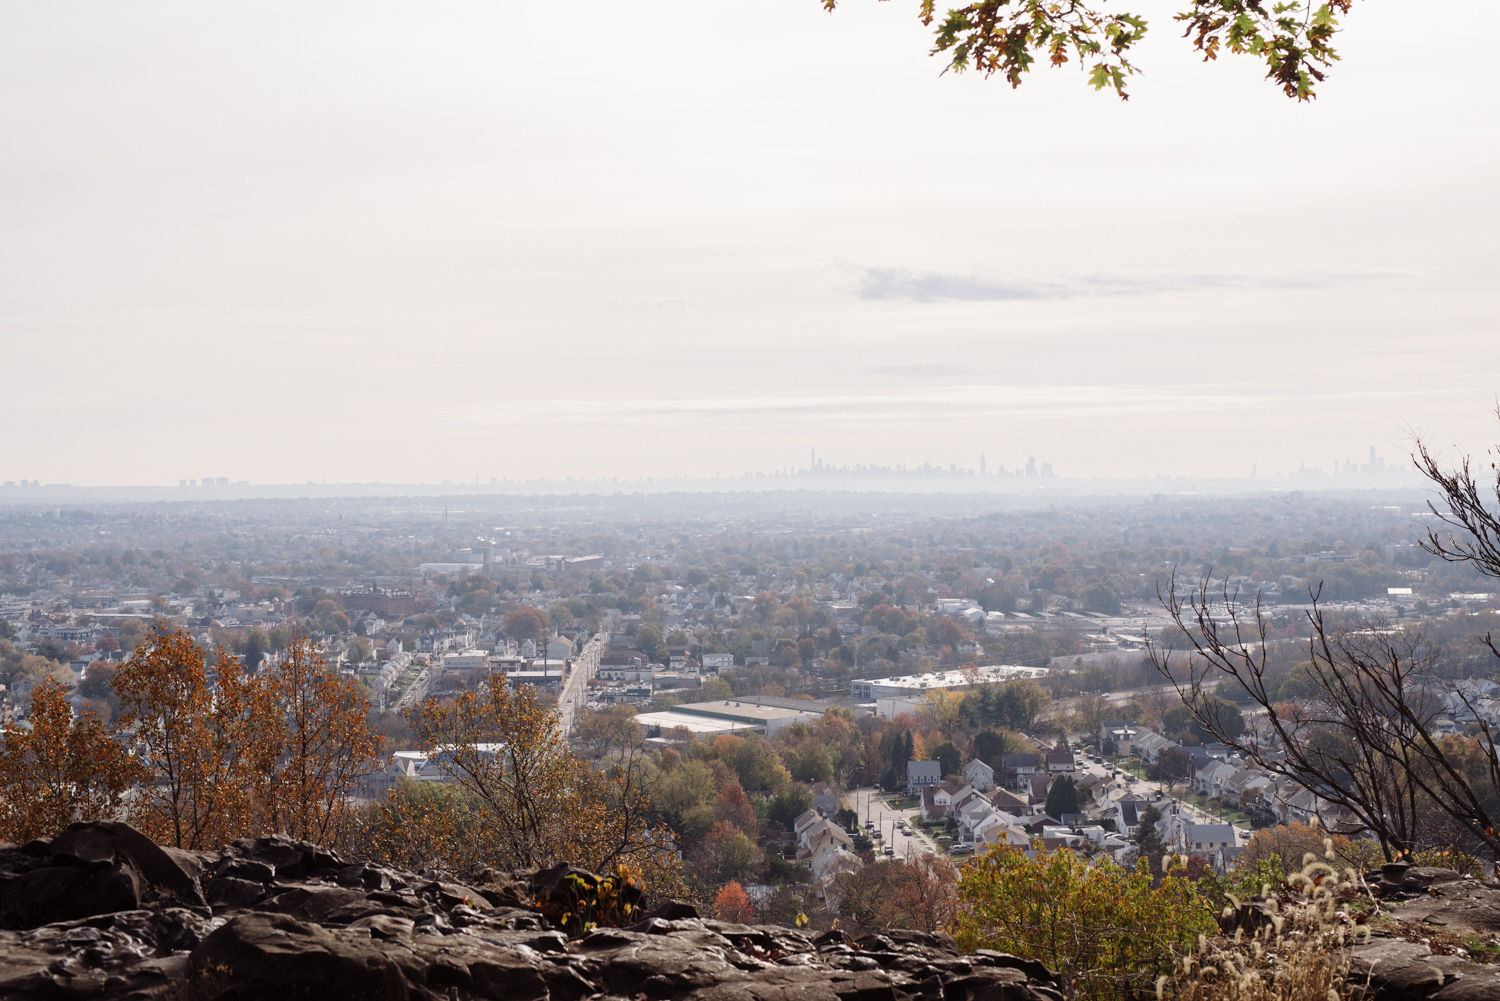 Amy+Brian- Garret Mountain Engagement Session- Fall Nature- Film Photography-New Jersey- Olivia Christina Photo-55.JPG